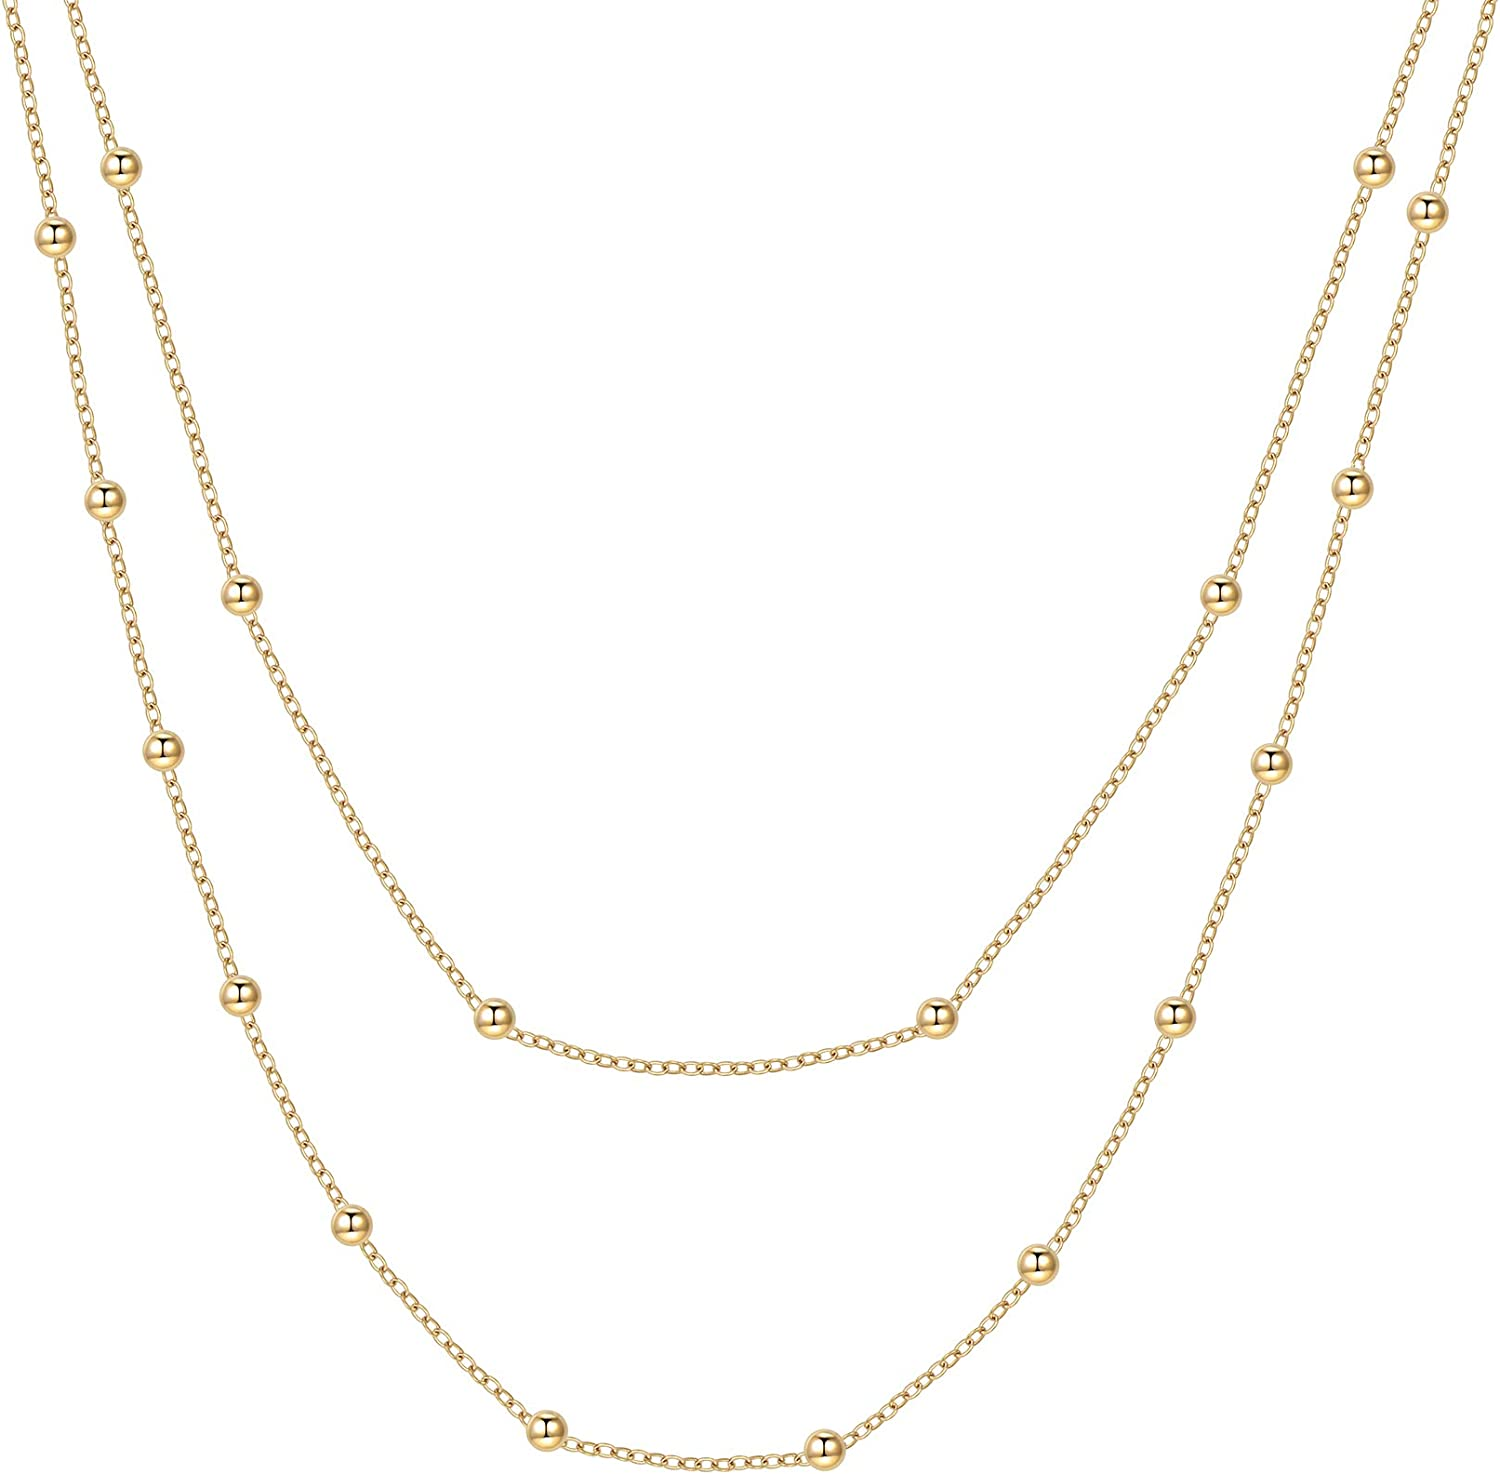 Happiness Boutique Women Layered Necklace Gold Color Delicate Double Chain Necklace Stainless Steel Jewelry